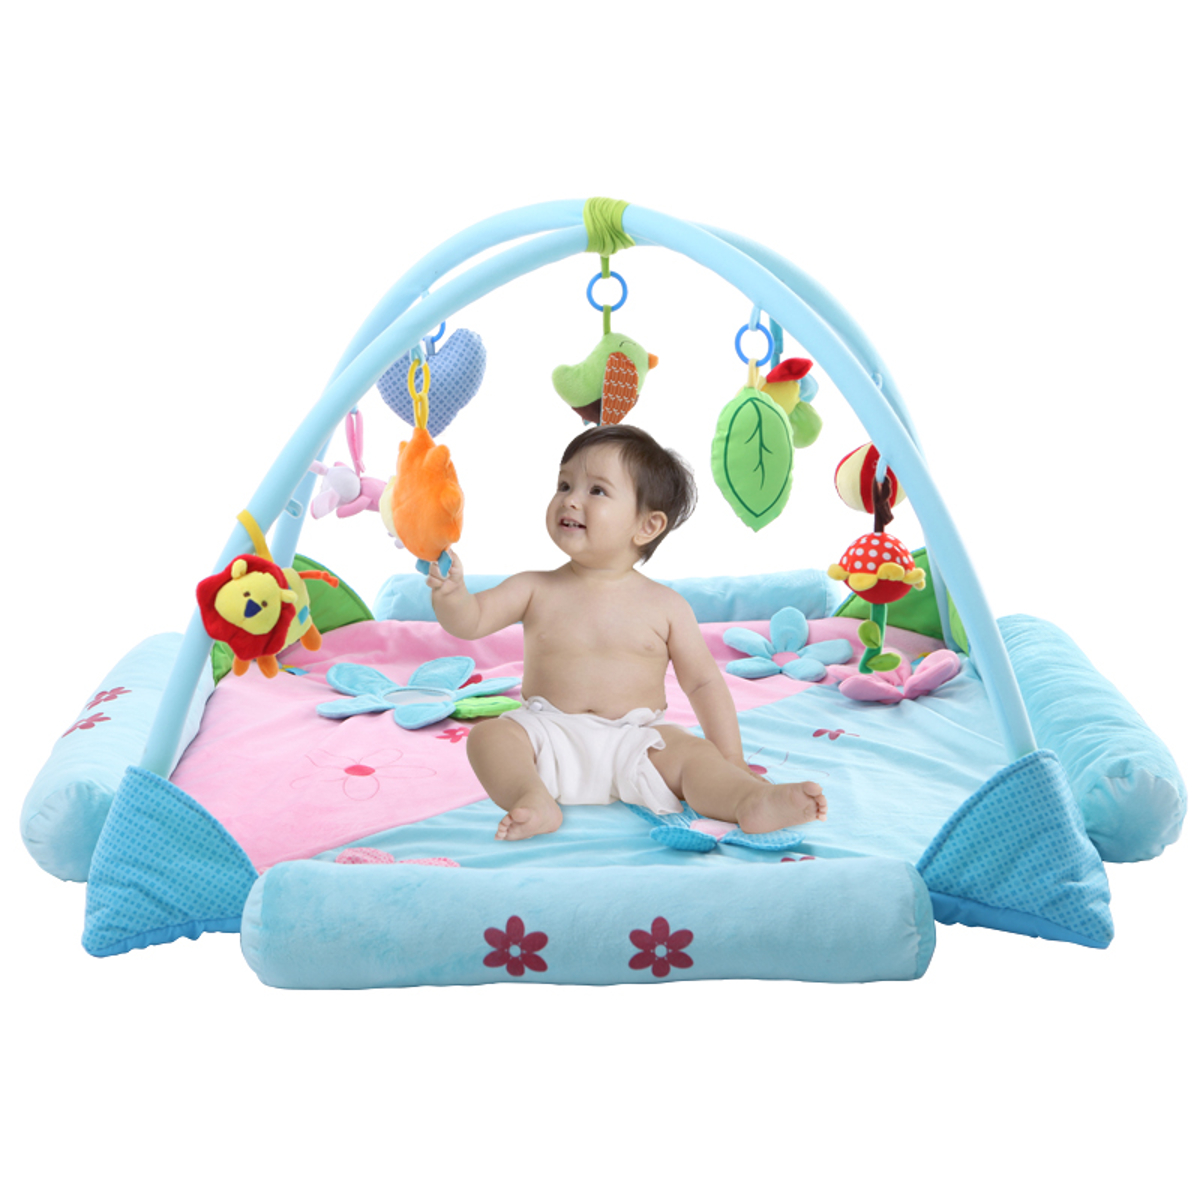 Meigar Infant Baby Kids See Play Go Activity Gyms & Playmats Play Mat Crawling Tummy Time Soft Toddler Toy Gift